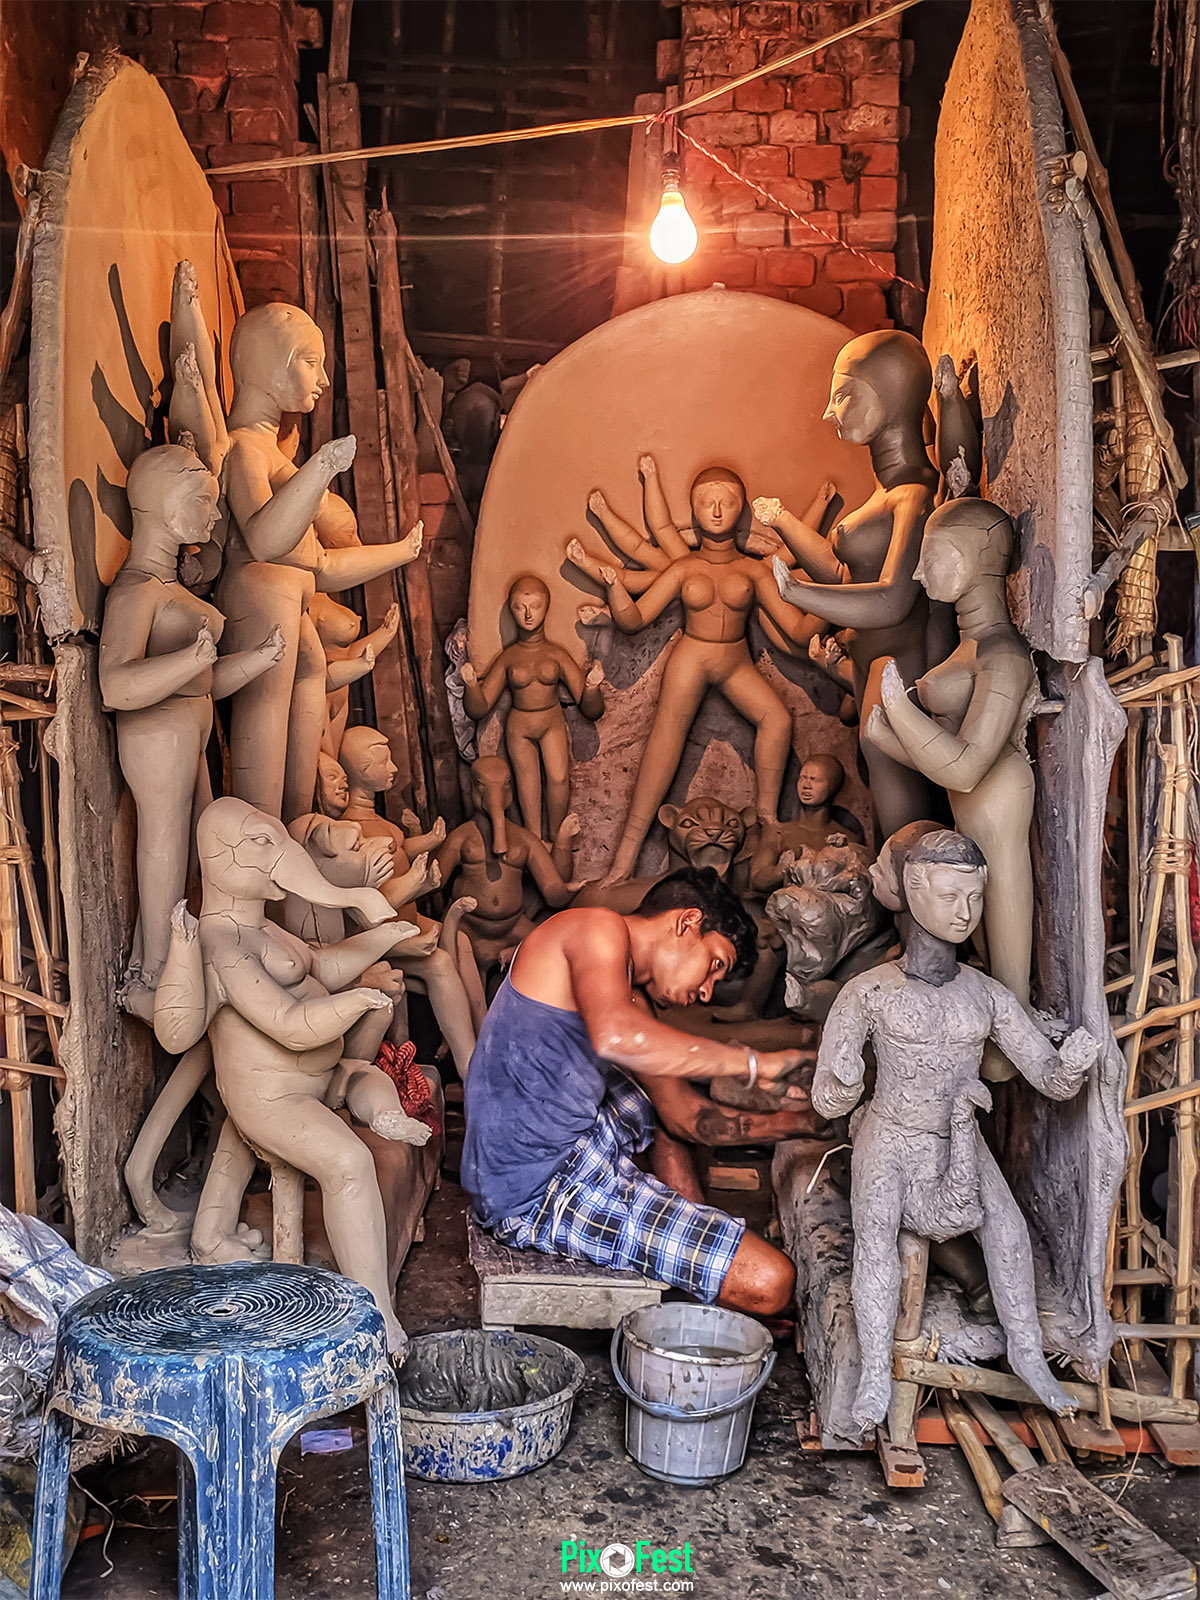 work,soil,durga,maadurga,kumortuli,idol,lightandshadow,light,mobileshot,mobilecapture,mobilephotography,photography,pixofest